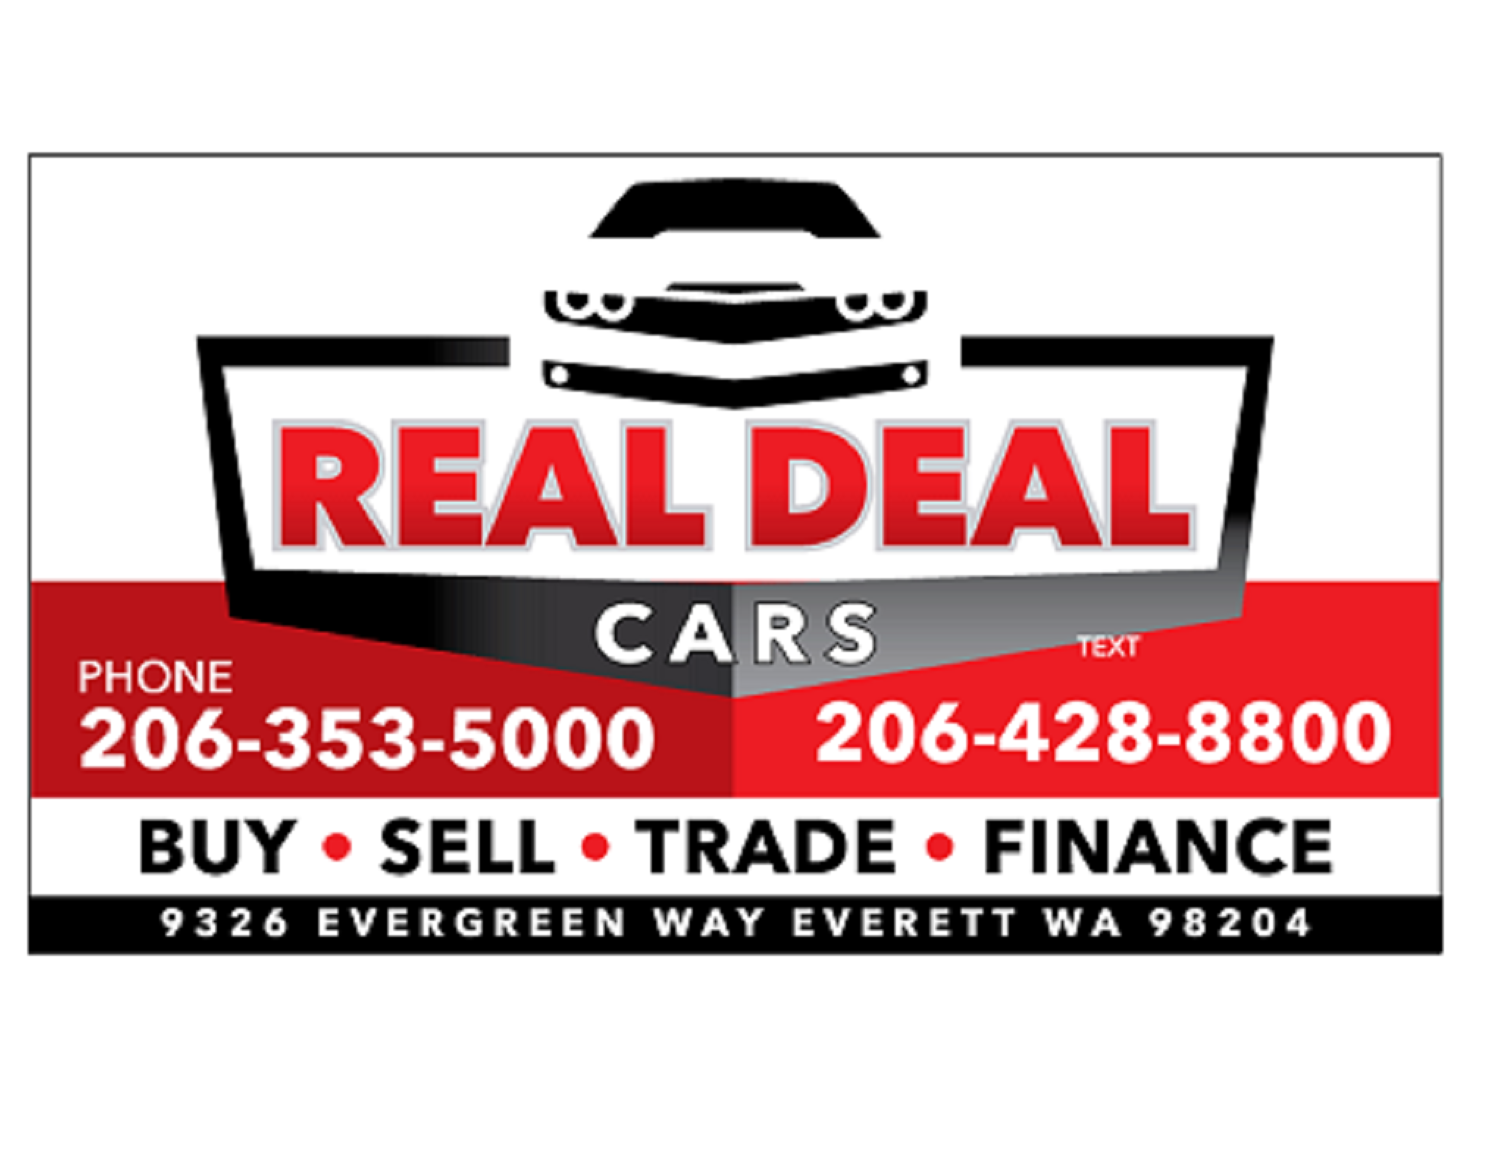 Used Cars Everett Wa >> Real Deal Cars - Everett, WA: Read Consumer reviews, Browse Used and New Cars for Sale